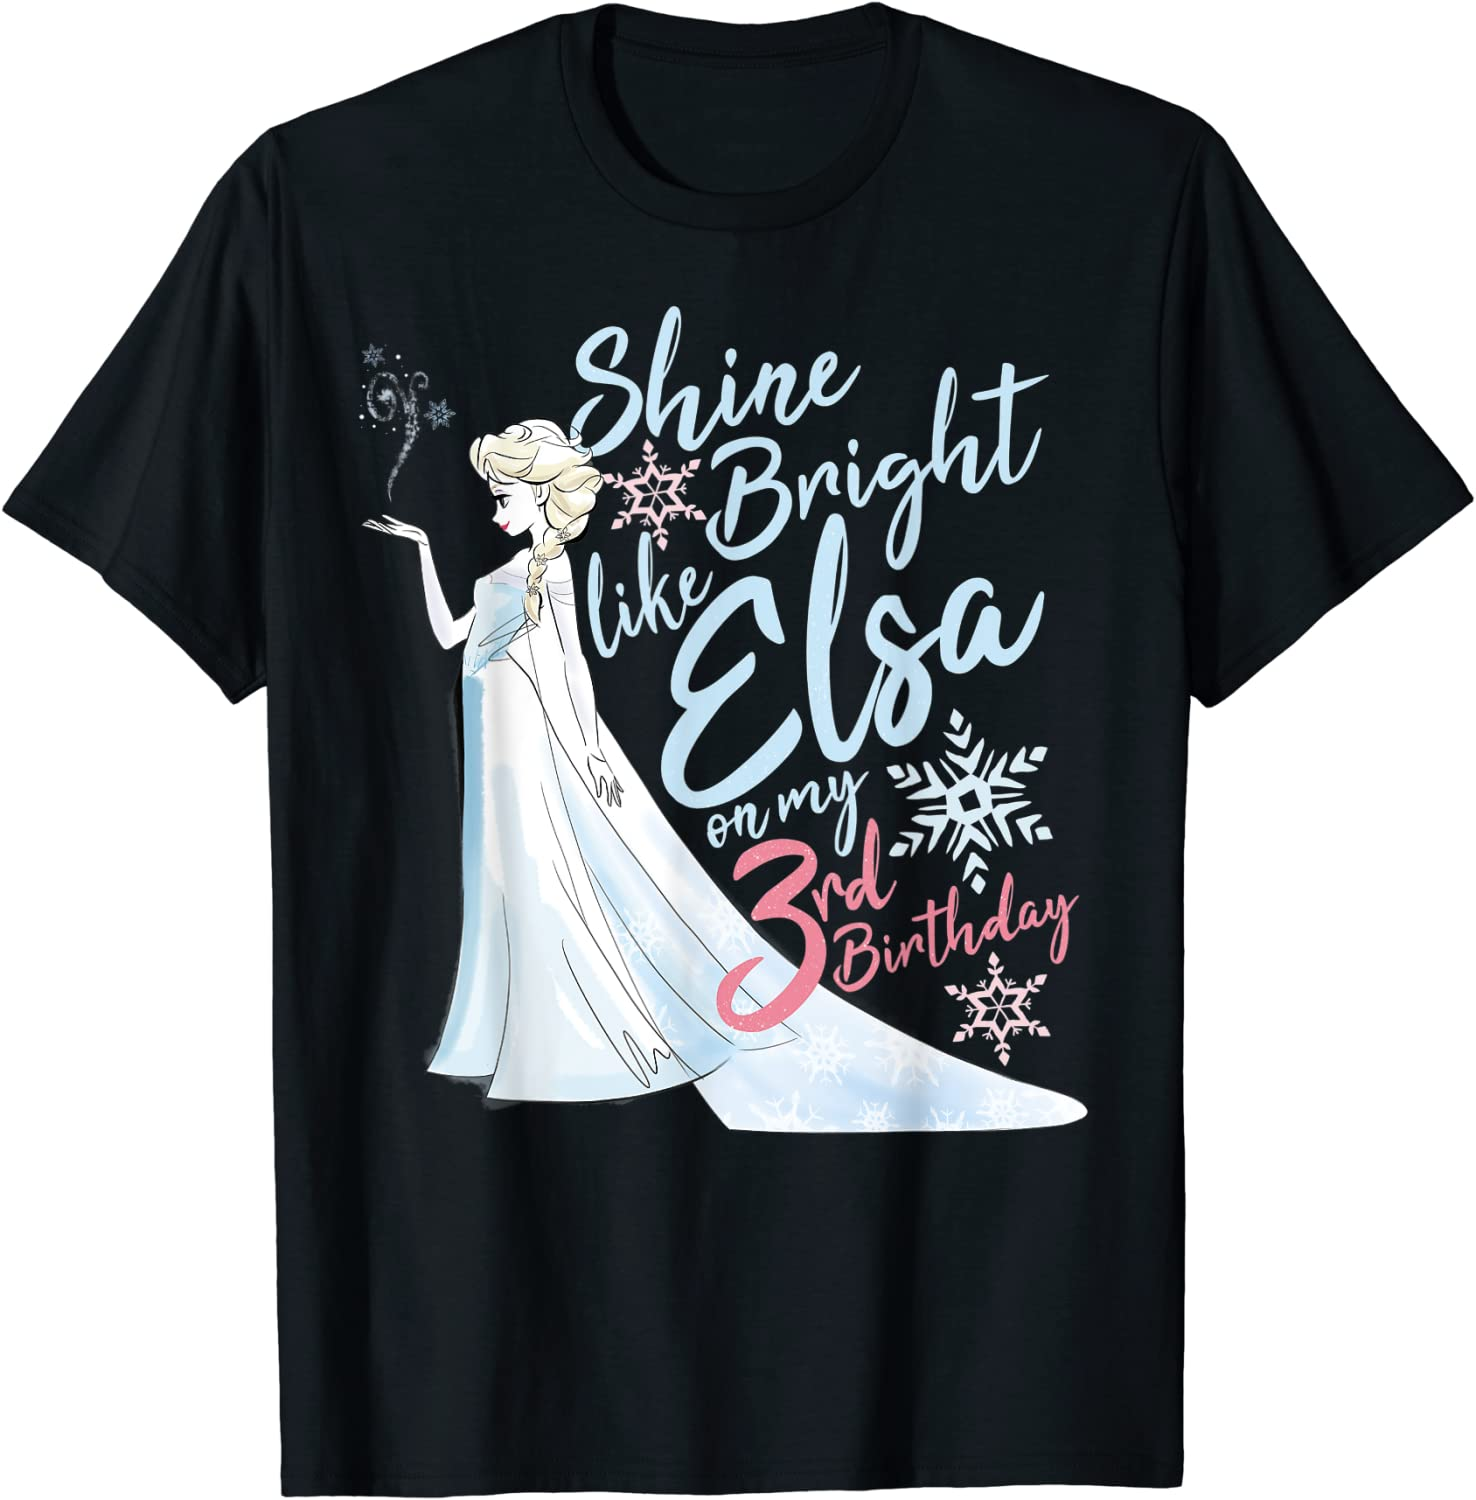 Special price for a limited time Disney Frozen Elsa Shine Bright T-Shirt Birthday My 3rd On Popular products